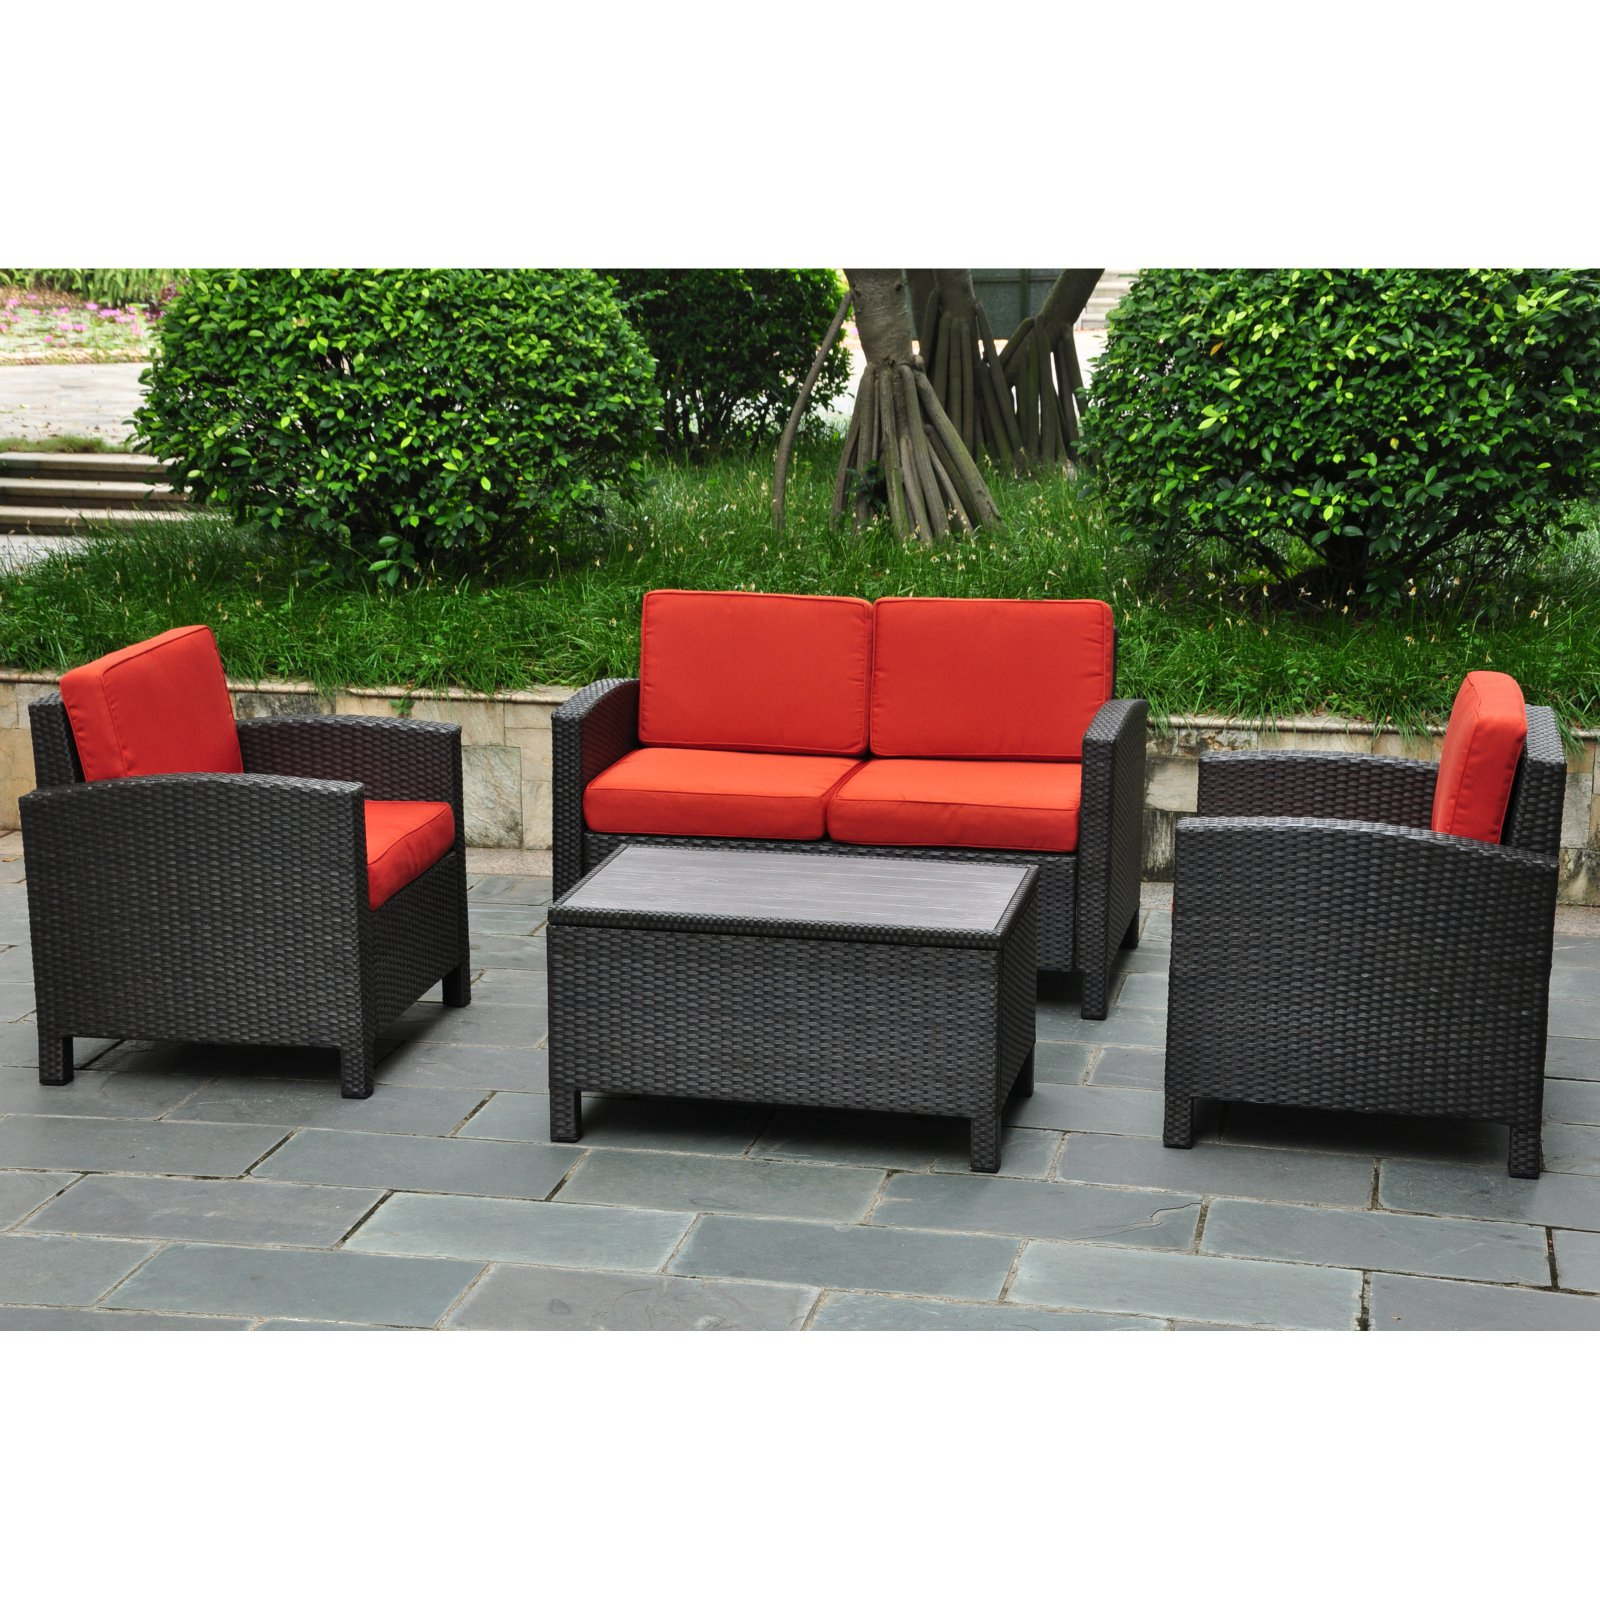 Newest Katzer Patio Sofas With Cushions With International Caravan Barcelona Resin Wicker Outdoor Patio (View 19 of 20)